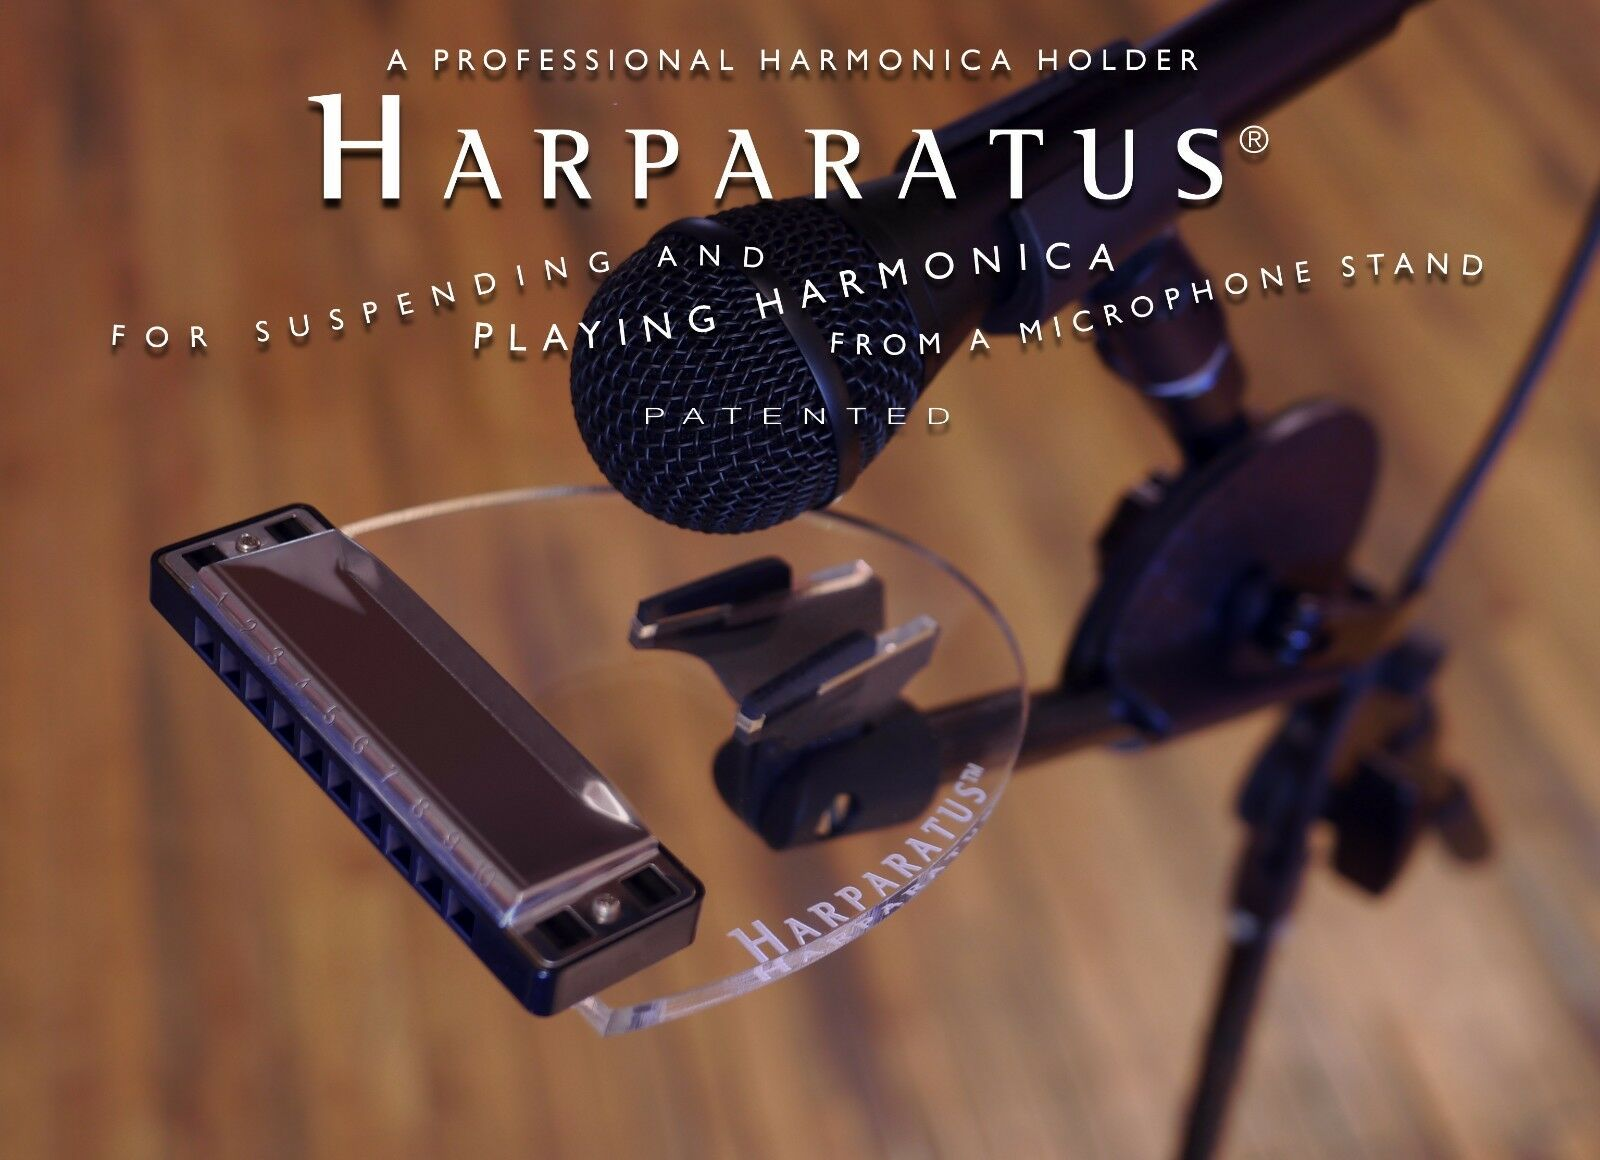 Harparatus Professional Mic Stand Harp Harmonica Holder - The Original  est 2001